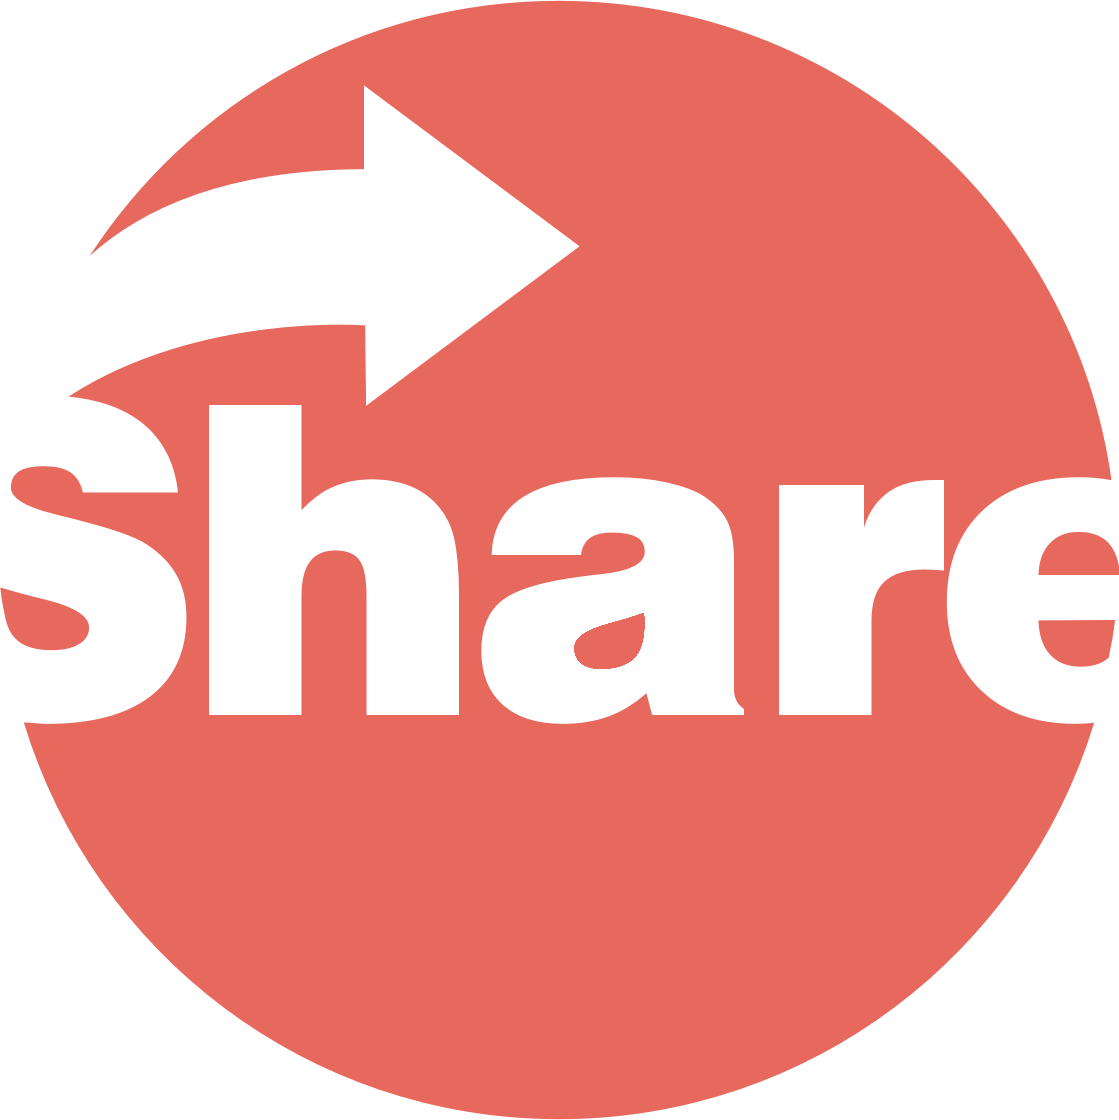 Share button png. Icons free and downloads